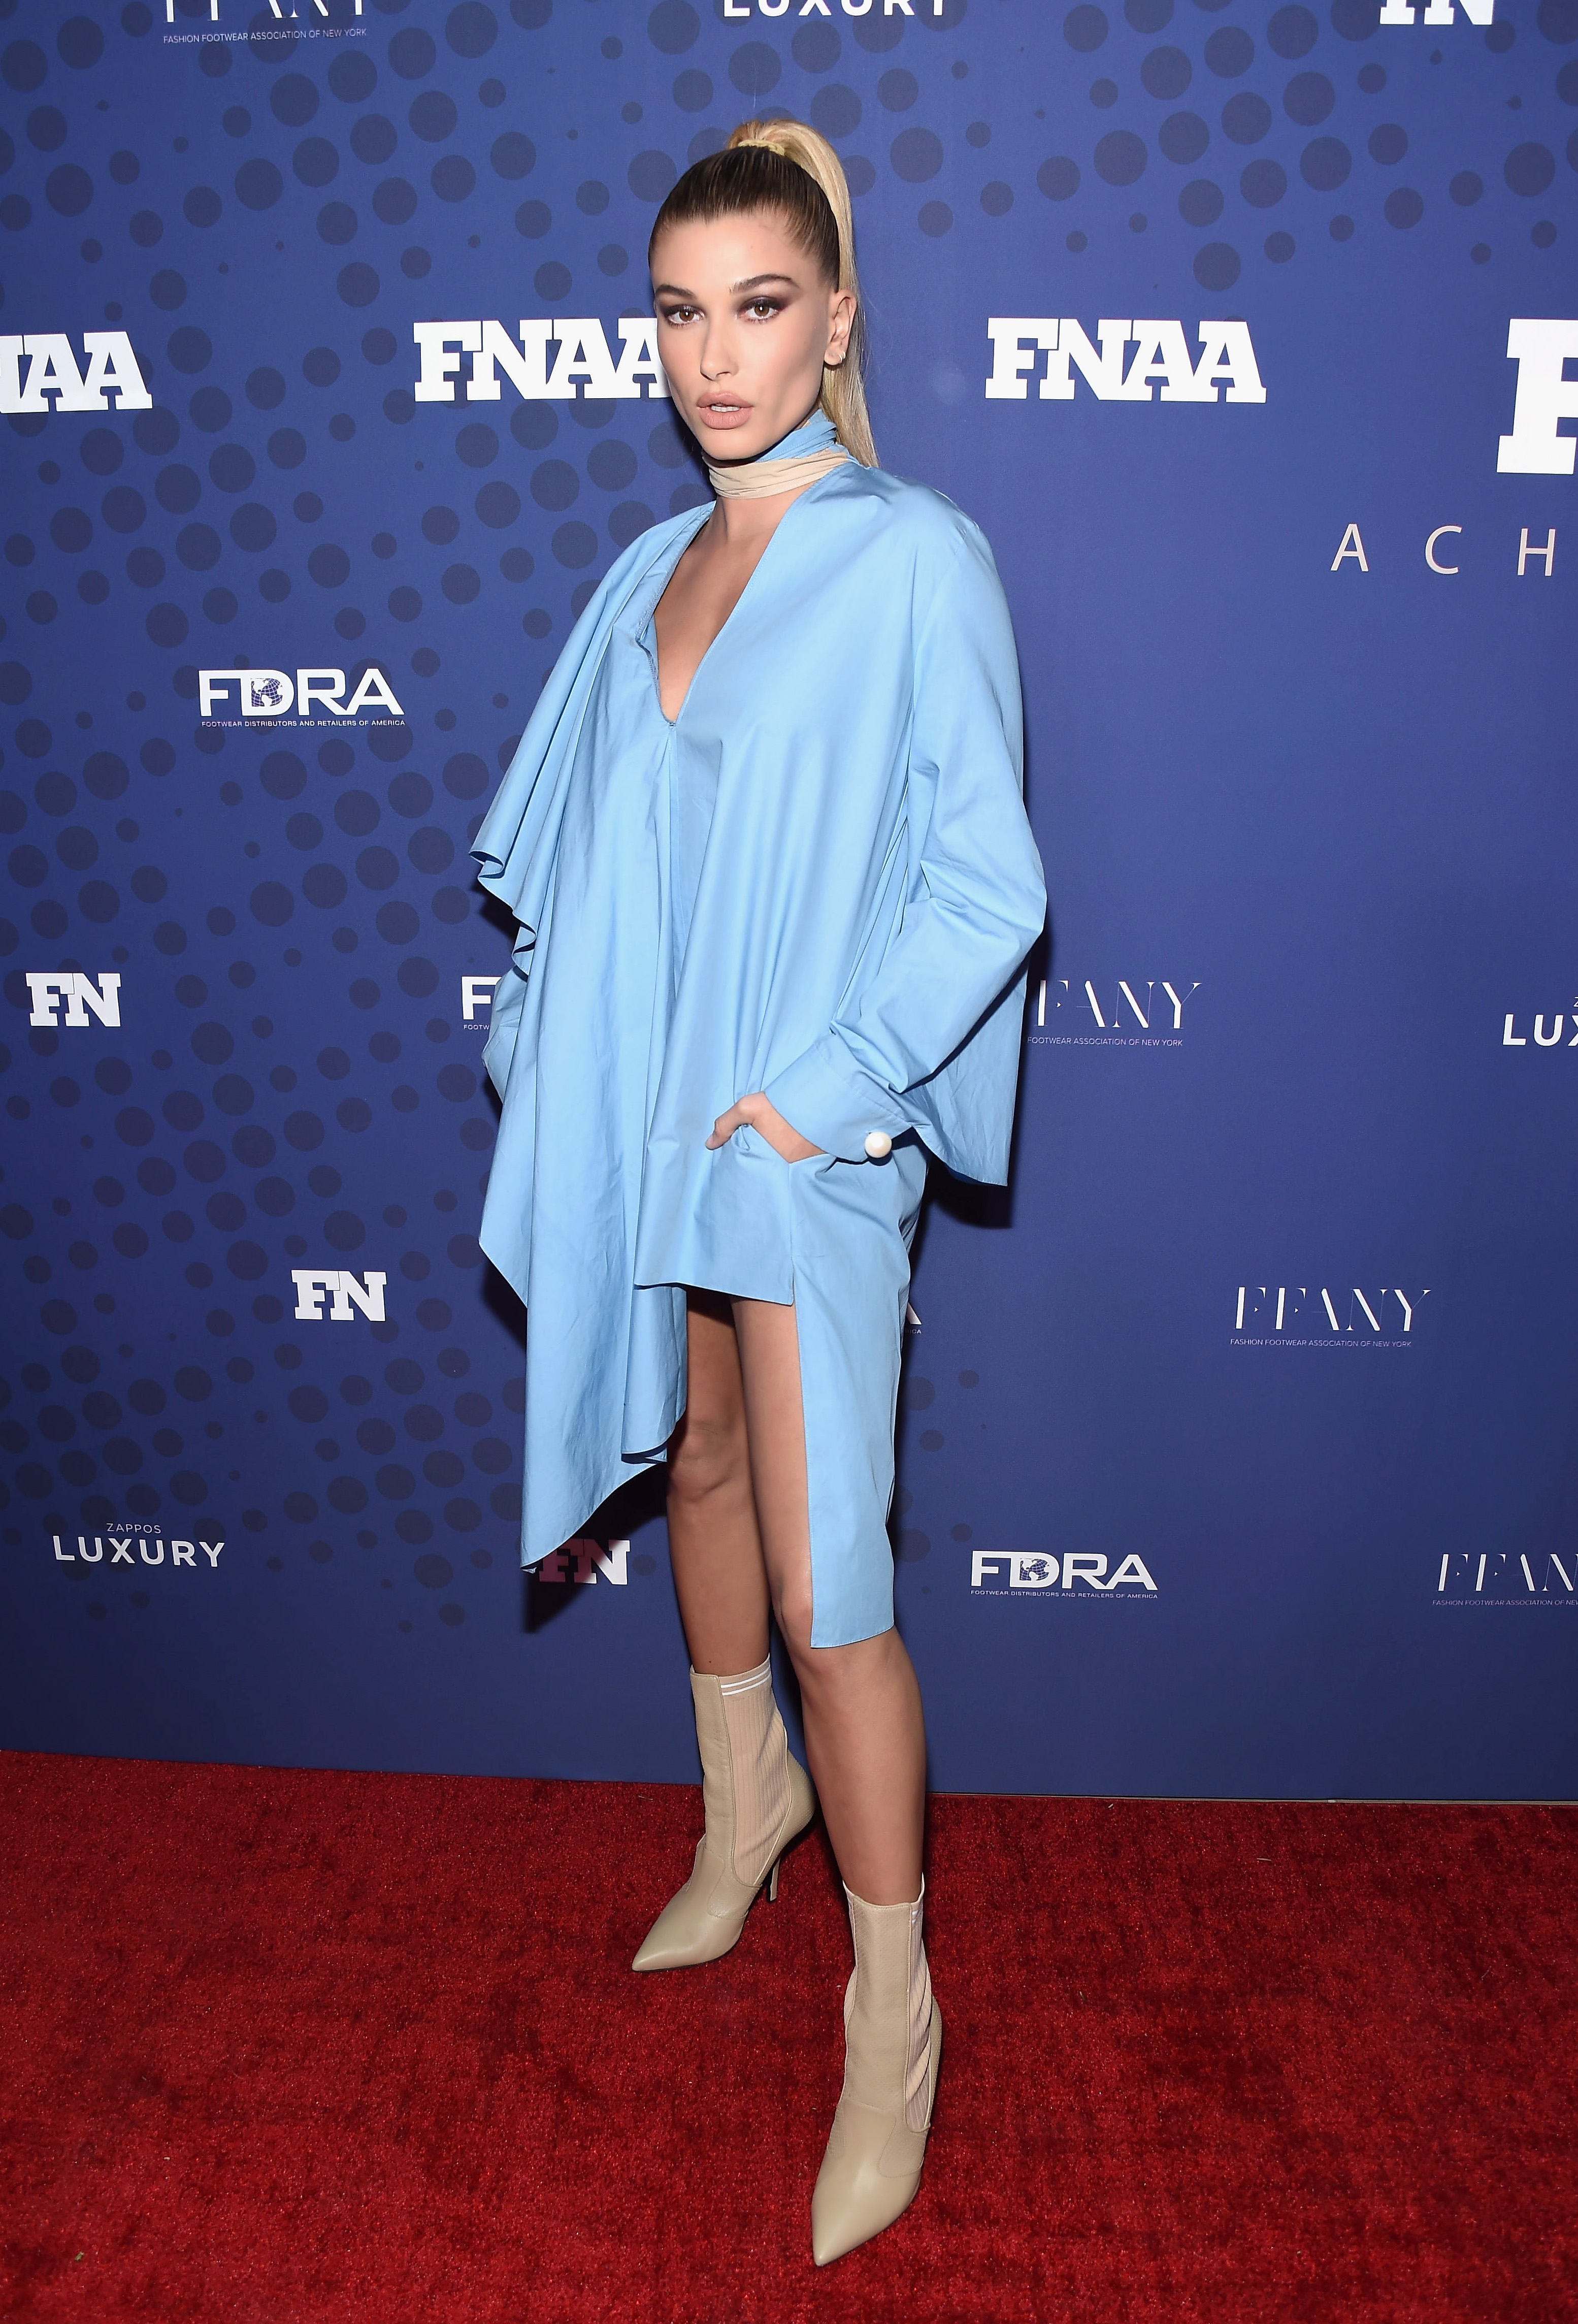 "<p>It was a case of no pants, no problem, for model <a href=""https://style.nine.com.au/hailey-baldwin"" target=""_blank"">Hailey Baldwin</a> who arrived at the FN Achievement Awards in New York wearing a revealing mini Fendi dress. </p> <p>FN stands for <em>Footwear News</em> so Baldwin, who turned 21 last week, was bang on brief, drawing attention to her beige booties.</p> <p>Offering a more urban take on the trouser tossing trend was Justine Skye, wearing the jacket from a sky blue Public School pantsuit.</p> <p>""I think it's cool that people think my style is cool enough to [win an] award,"" Baldwin told <em><a href=""http://footwearnews.com/2017/influencers/awards/hailey-baldwin-fnaa-2017-footwear-news-achievement-awards-style-influencer-of-the-year-461287/"" target=""_blank"" draggable=""false"">Footwear News</a></em>. ""I'm grateful. Street style is such a big part of my job and life, so to be recognised for that is a great opportunity for me.""</p> <p>Don't expect to see Baldwin shirtless away from the red carpet with actor Alec's niece saying that her go-to outfit is: ""Leggings, sports bra and a hoodie.""<br /> <br /> </p>"